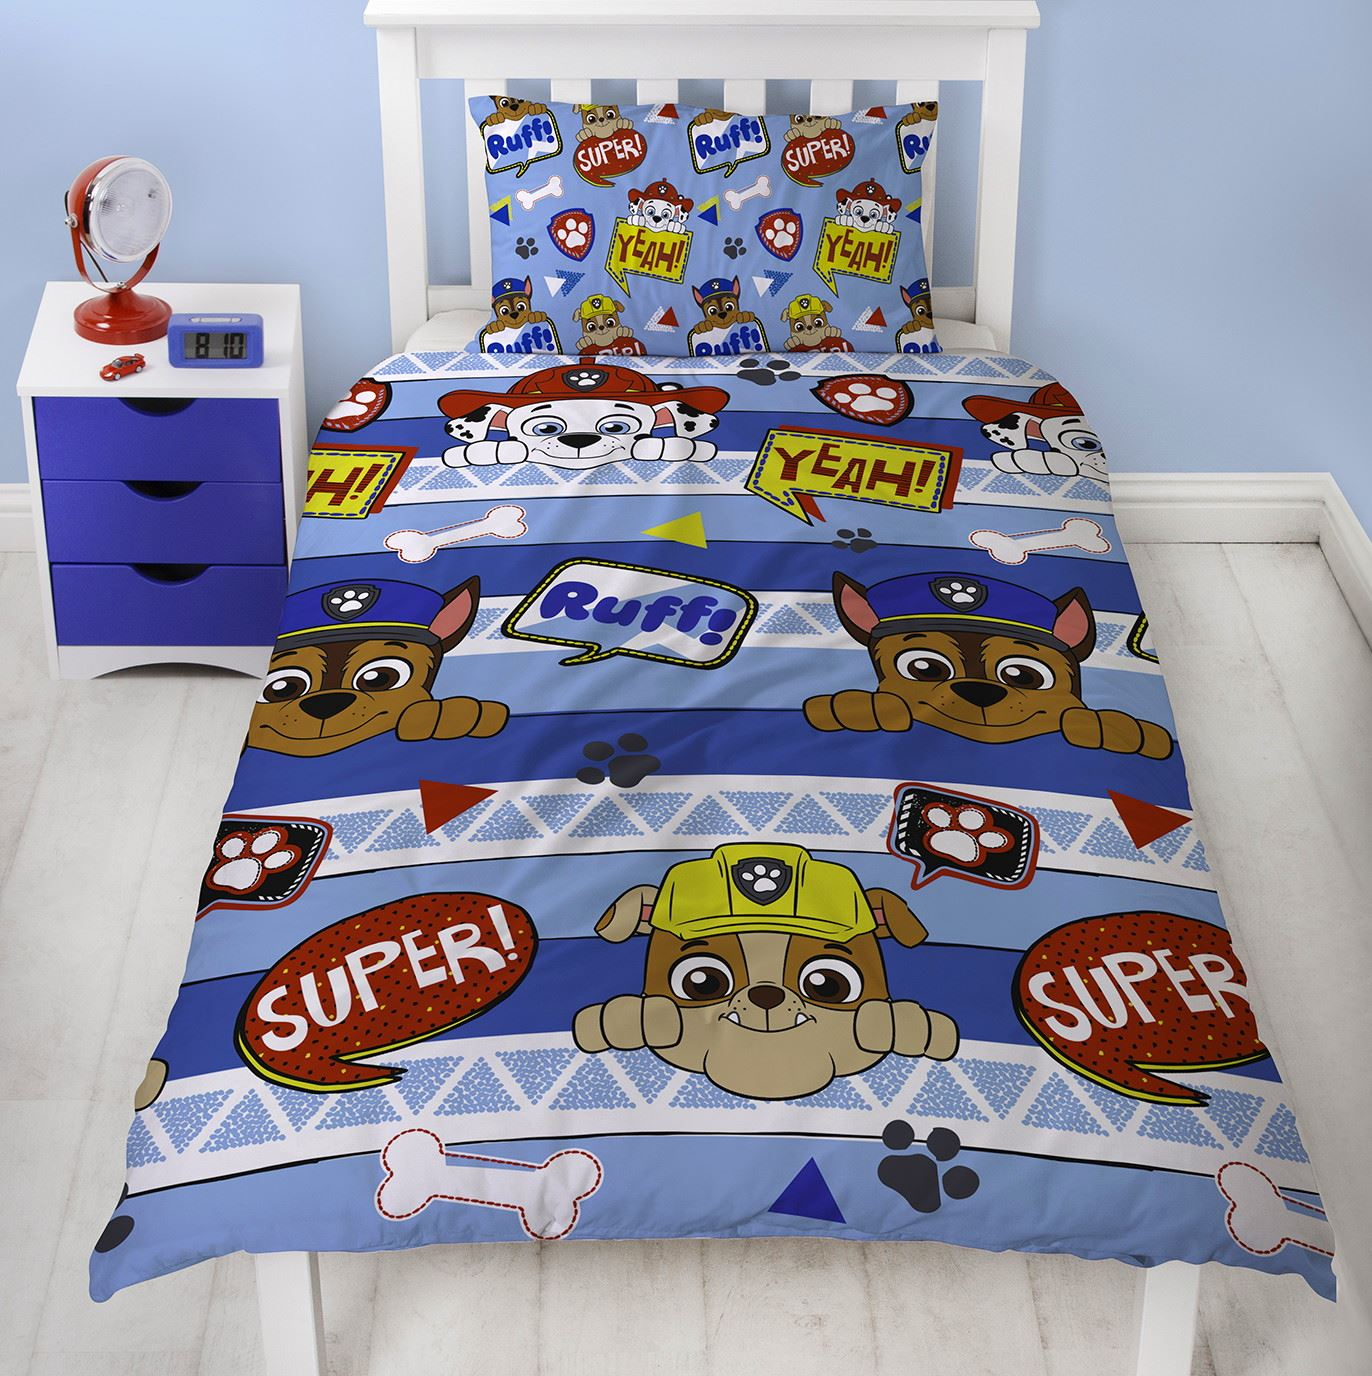 Official-Paw-Patrol-Licensed-Duvet-Covers-Single-Double-Chase-Skye-Marshall thumbnail 28